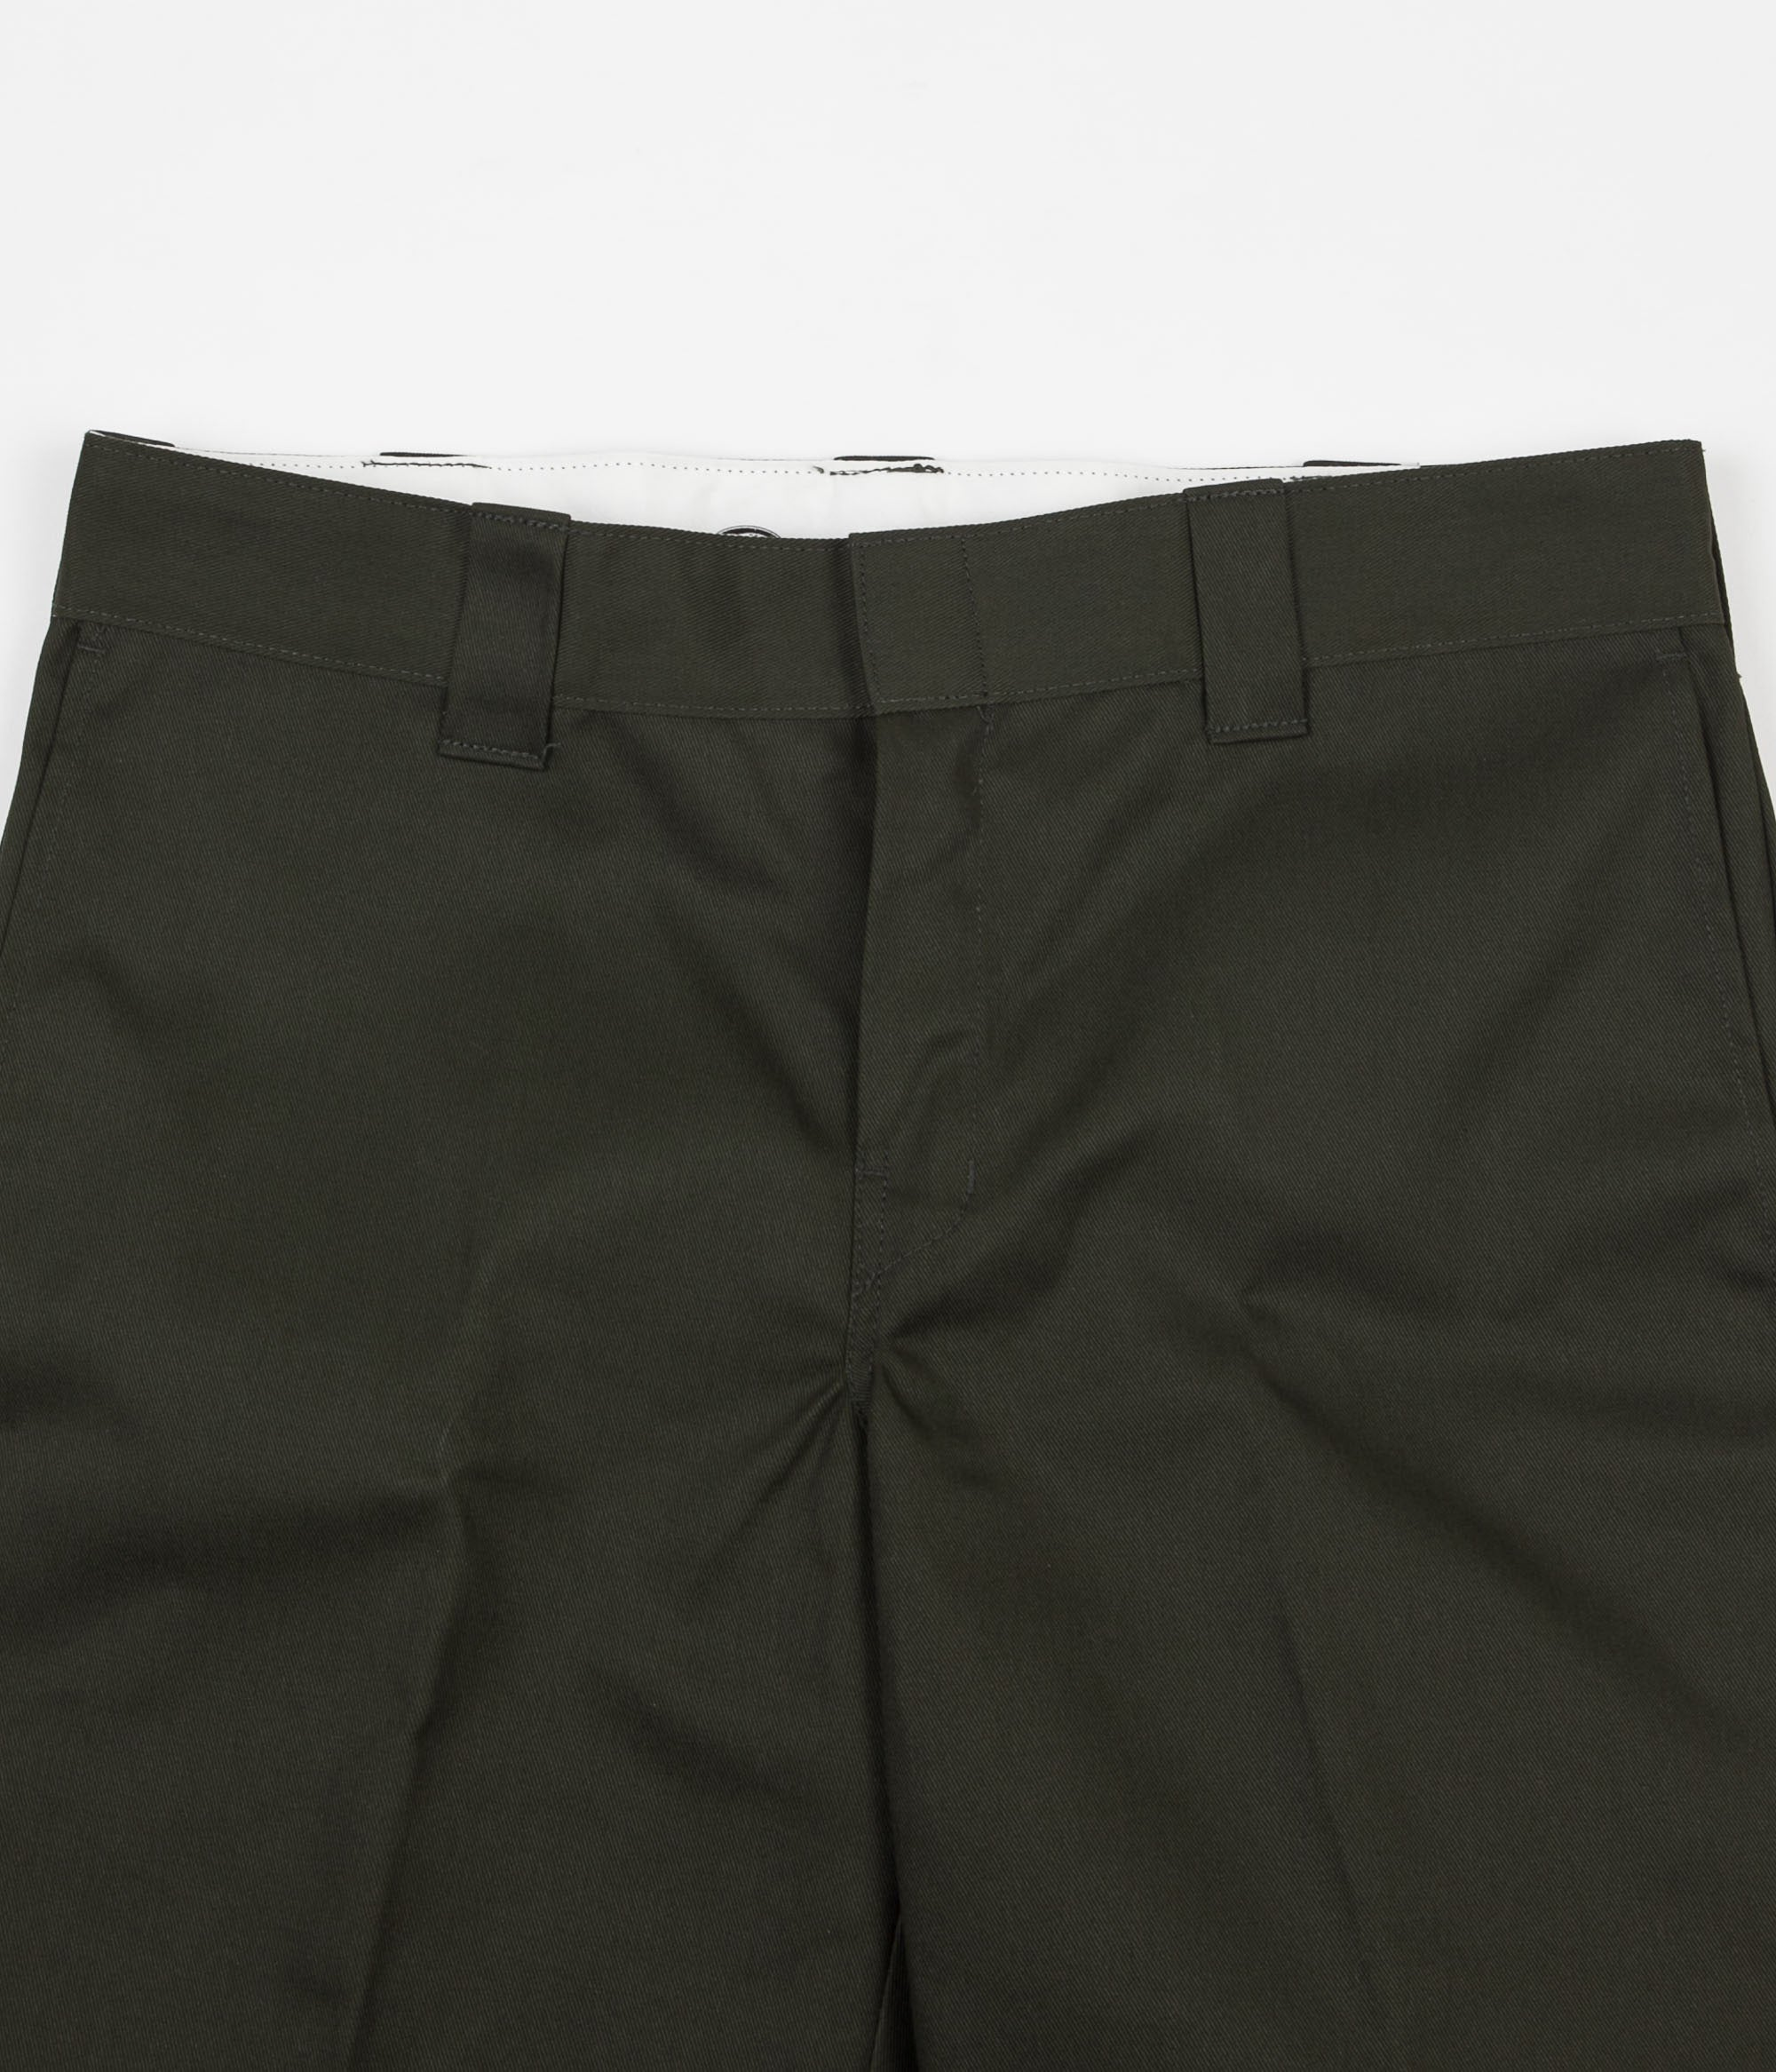 Dickies 273 Slim Fit Work Shorts - Olive Green